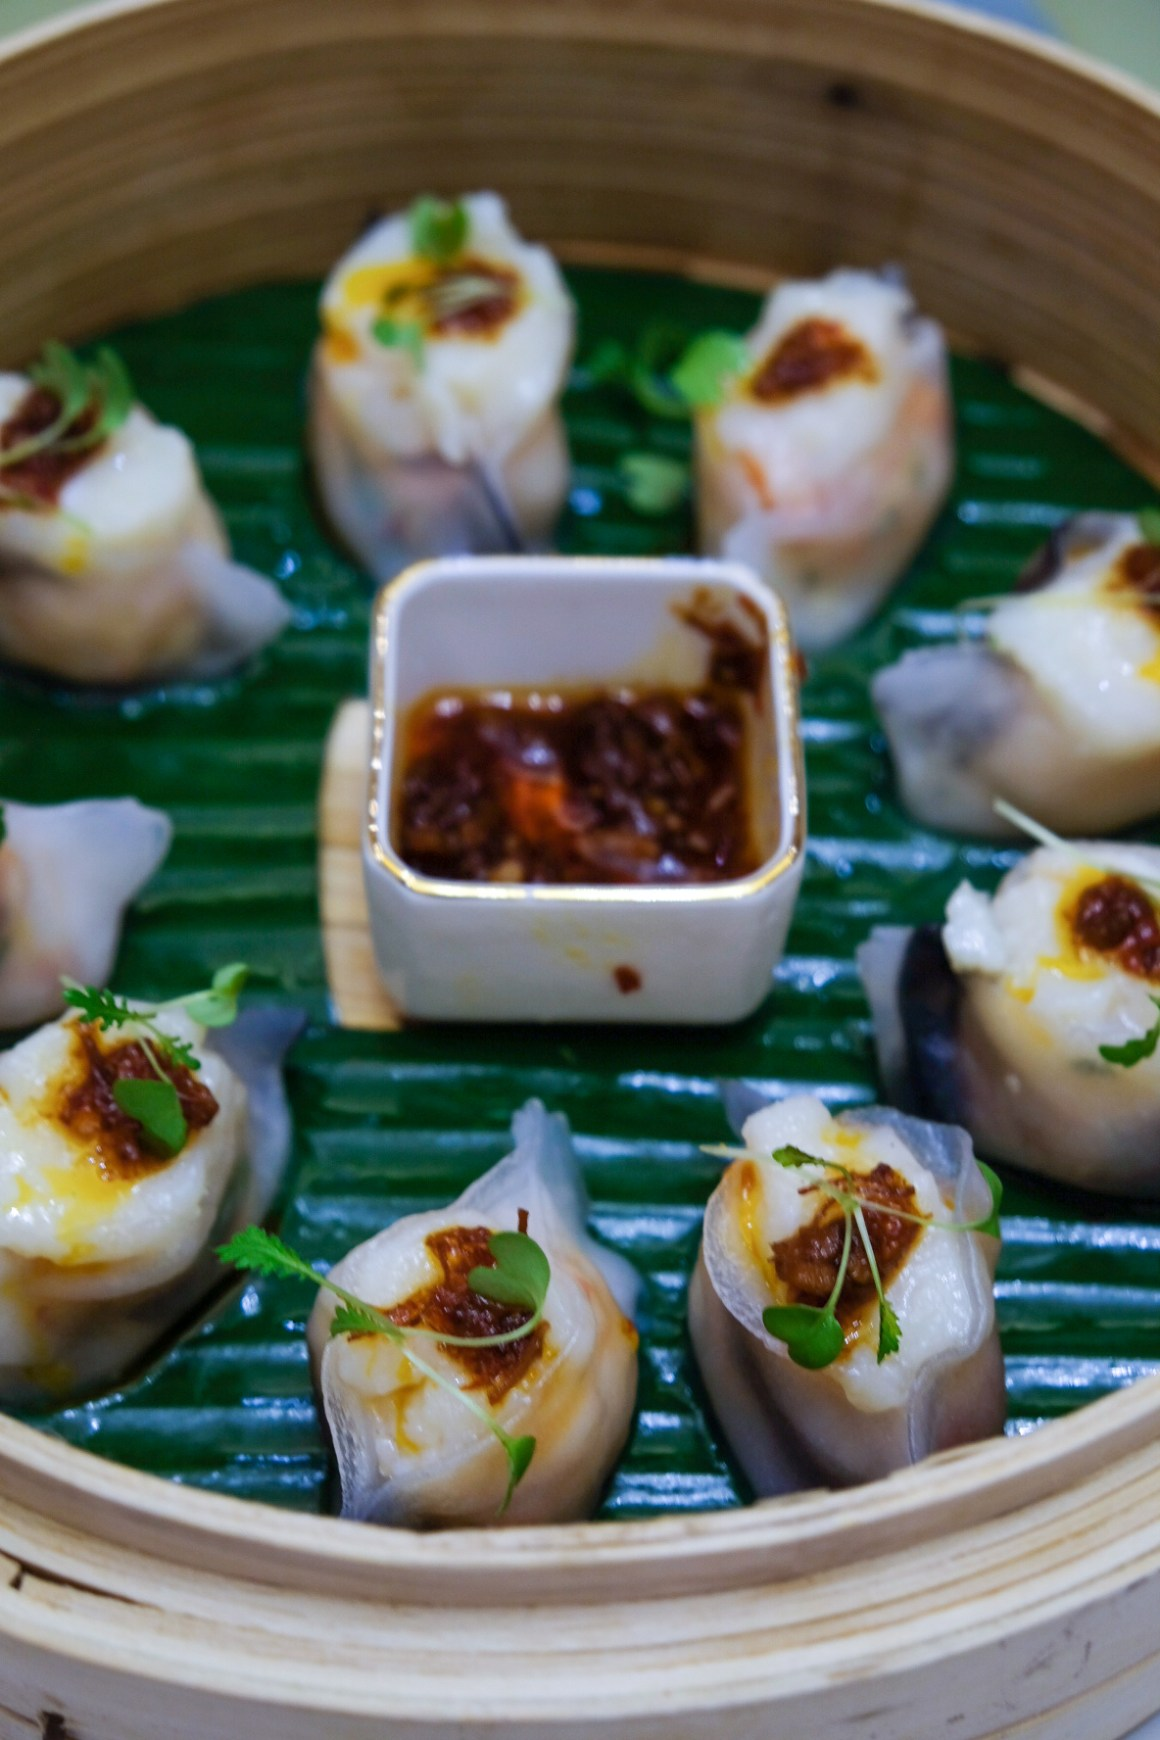 Steamed XO scallop dumpling wrapped in 'marbled' skin ($8.80 for 3 pcs)